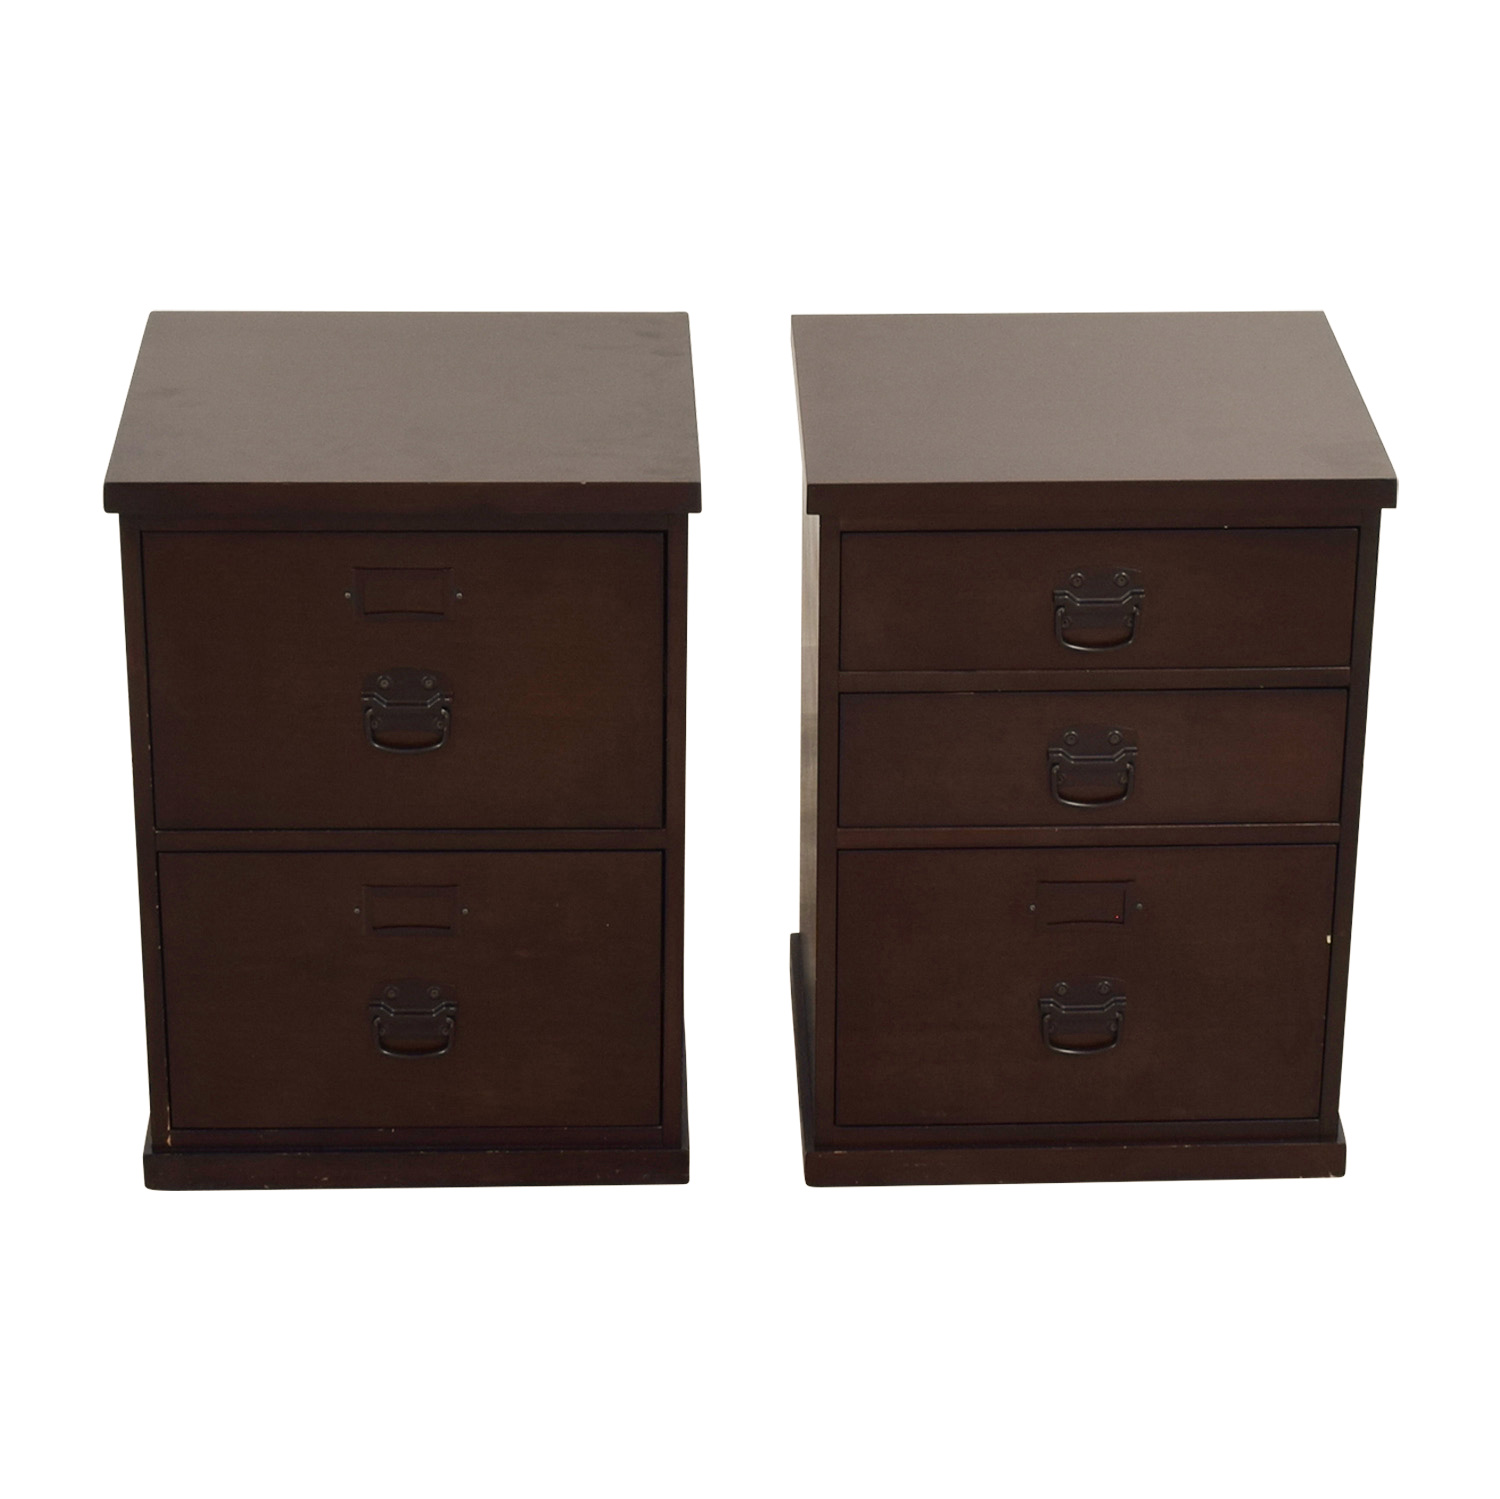 product img filing size used cabinet welter letter file hon drawer tan cabinets fireproof